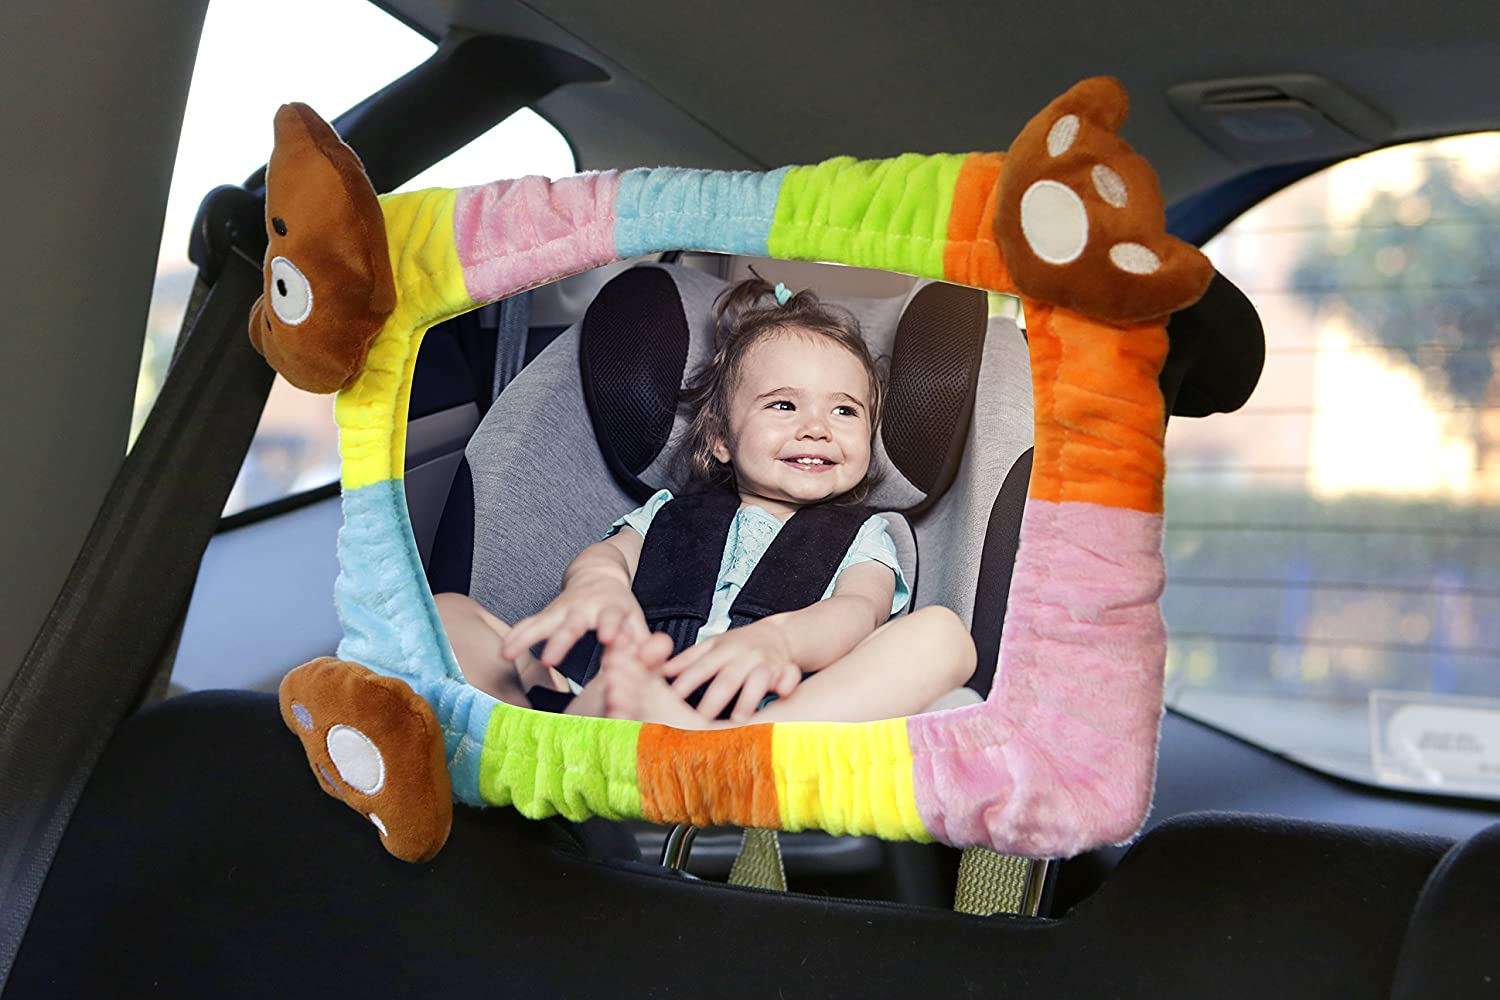 Evryneed Rainbow Baby Car Mirror, Backseat baby mirror, Rear view Car Mirror, Rectangle Shape with Soft multicolour velvet frame of teddy bear head and paw. 100% Shatterproof, Ready Assembled. Evryneed Ltd